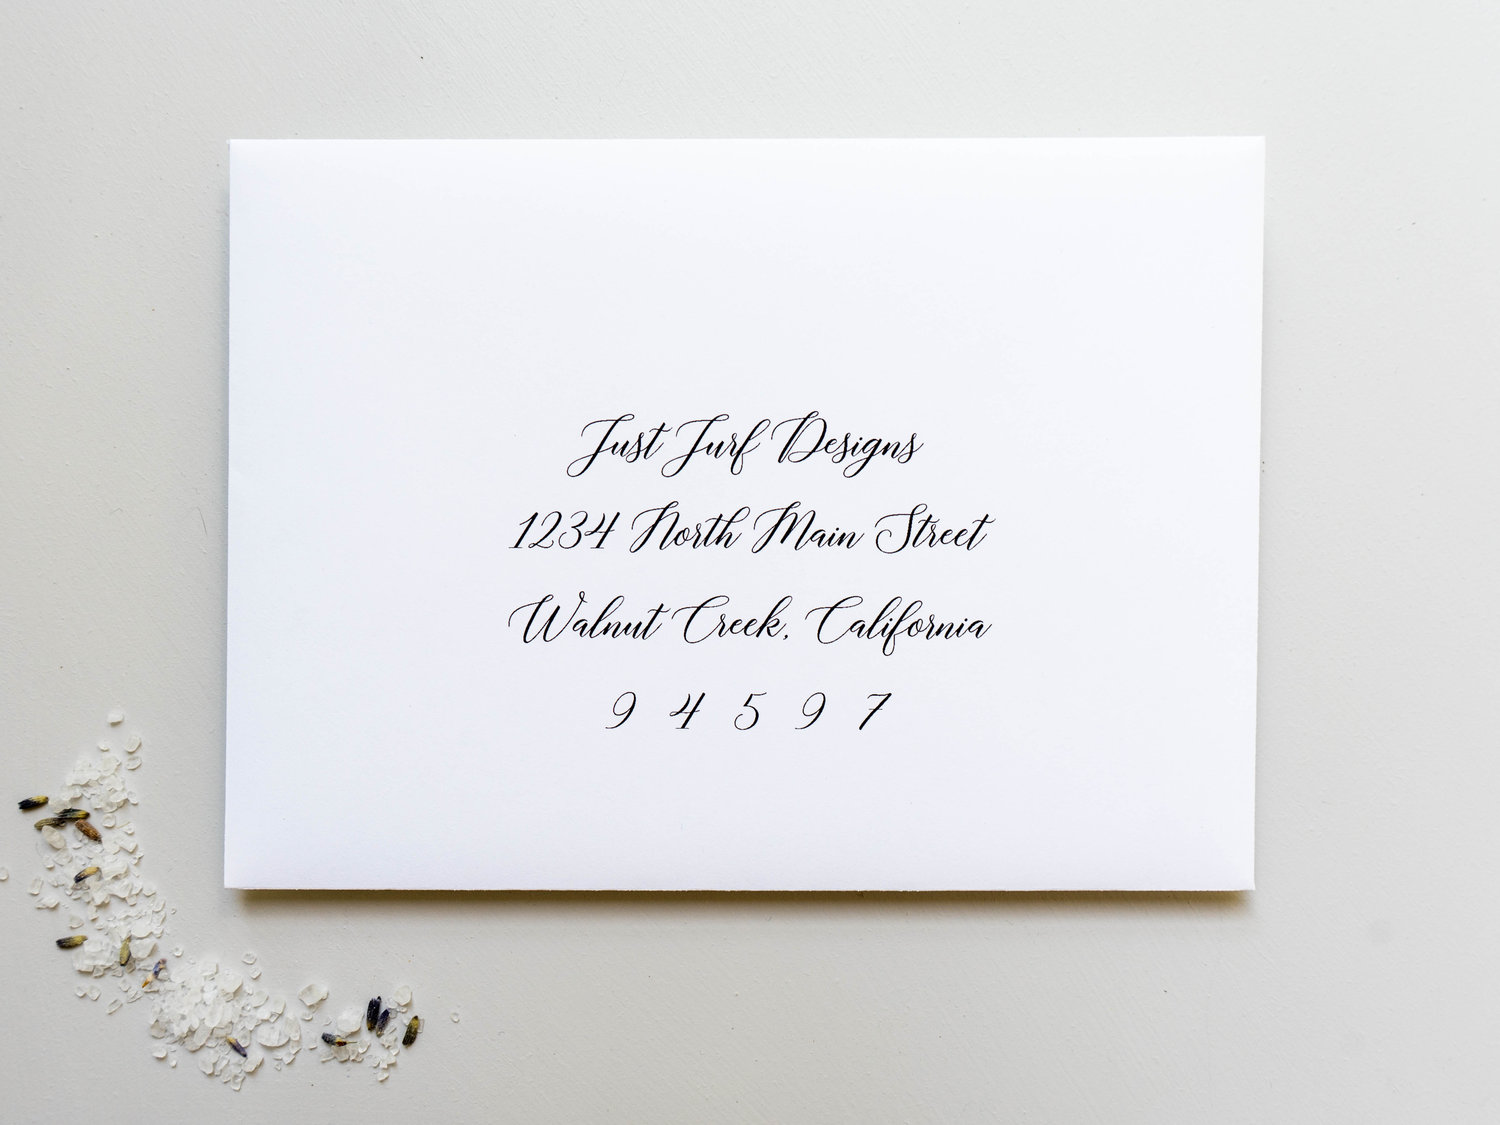 How To Address Your Wedding Invitation Envelopes Just Jurf Designs